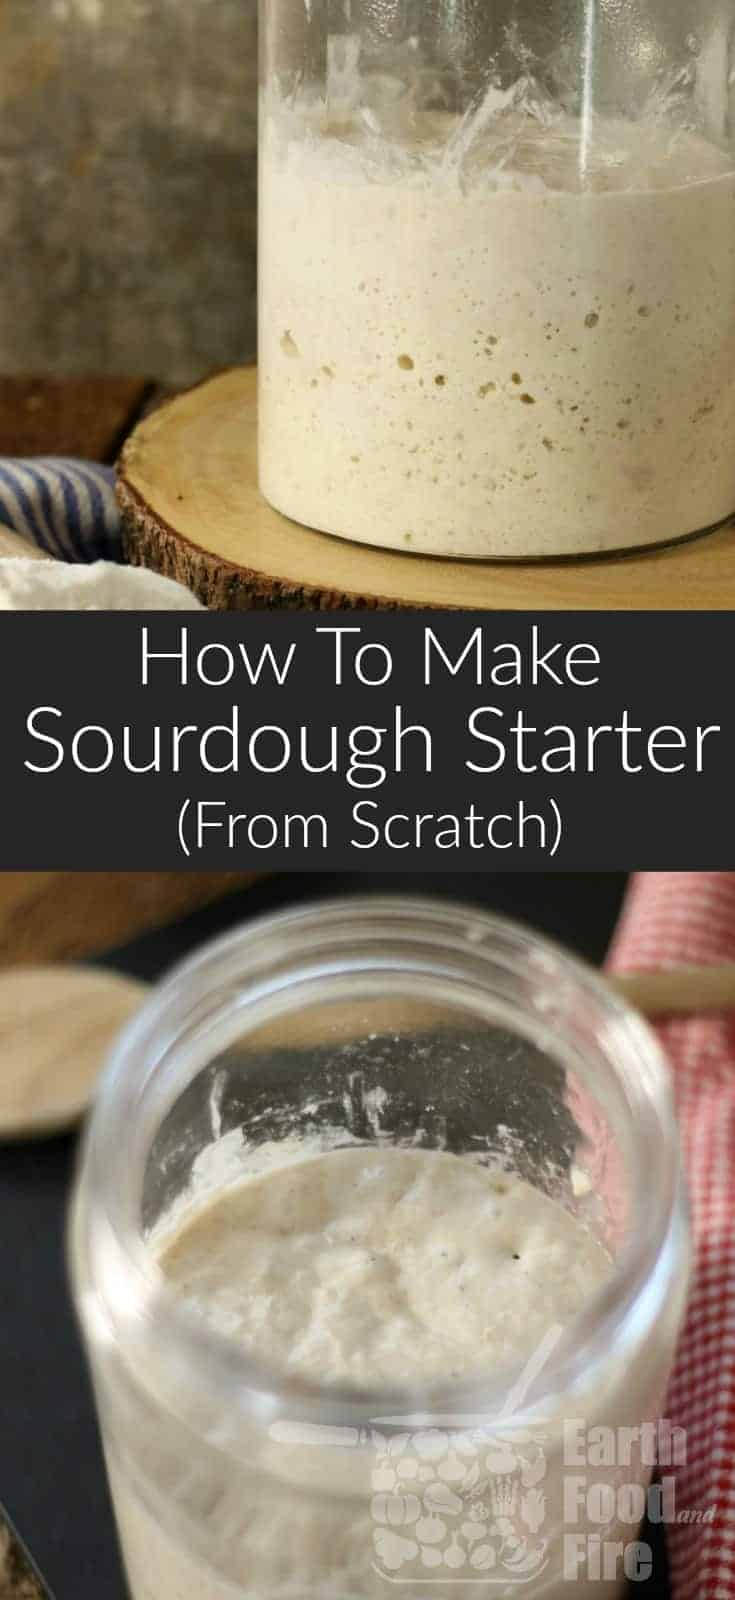 Learn how to make sourdough starter at home, and continue a centuries old tradition! This easy DIY guide covers everything you need to know to grow your own sourdough starter from scratch with no special ingredients. #sourdough #breadrecipes #sourdoughstarter #bread